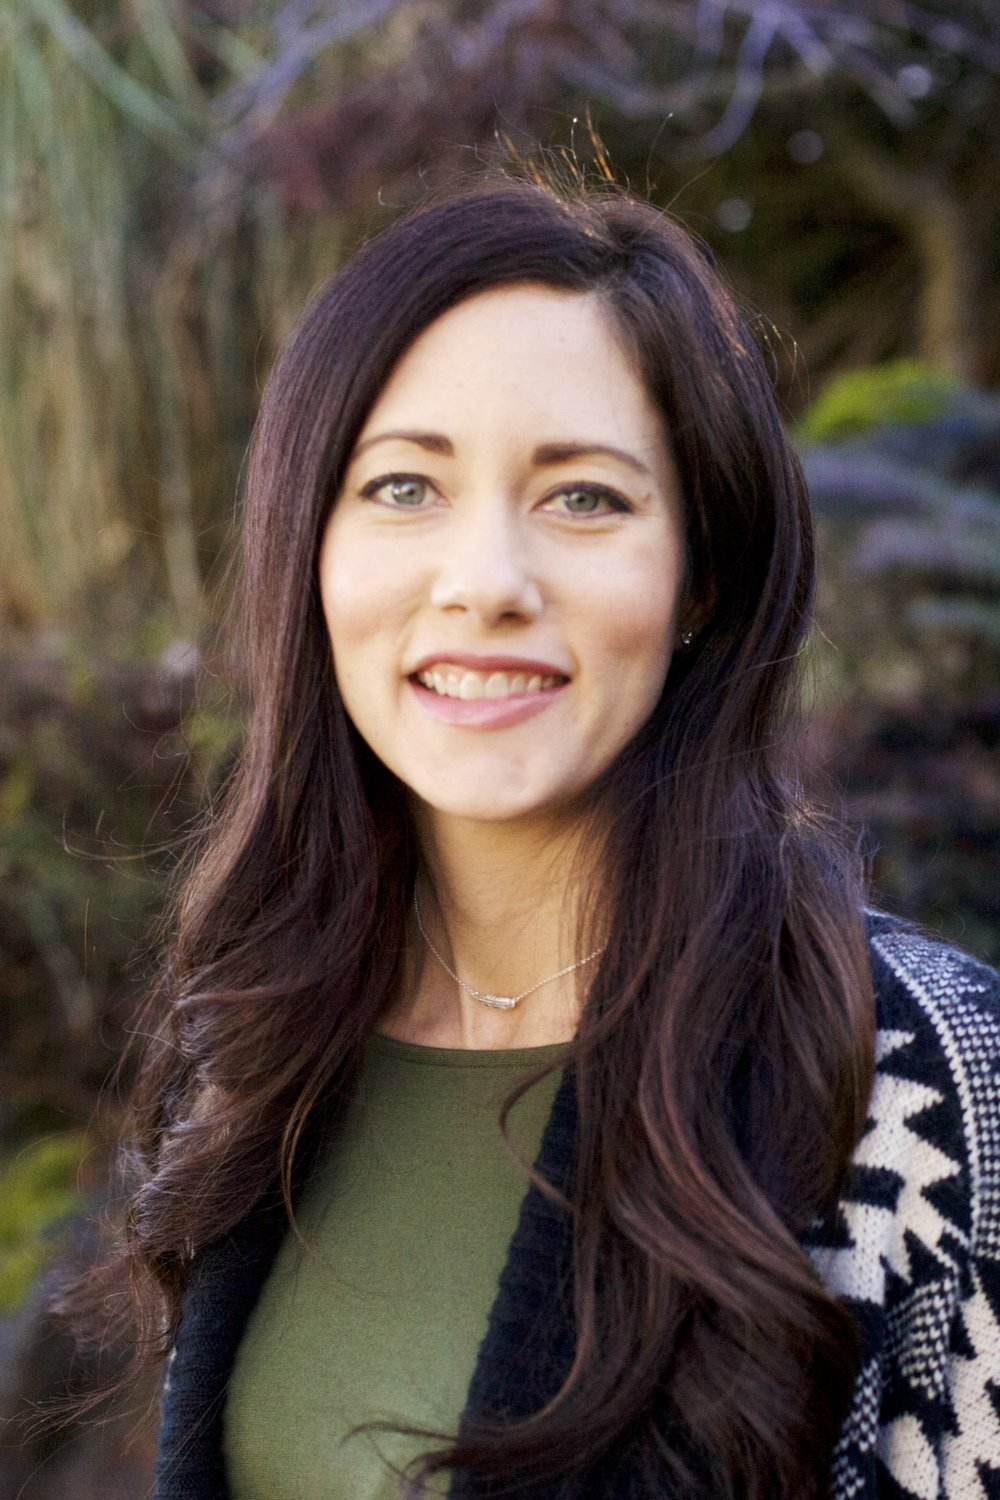 Kelly Hughes Berardi, PhD ∙ Self-Esteem ∙ Body Image ∙ Eating Disorders ∙ Sexual Assault and Abuse, Domestic Violence, Other Trauma ∙ Life Transitions ∙ Relationship Challenges